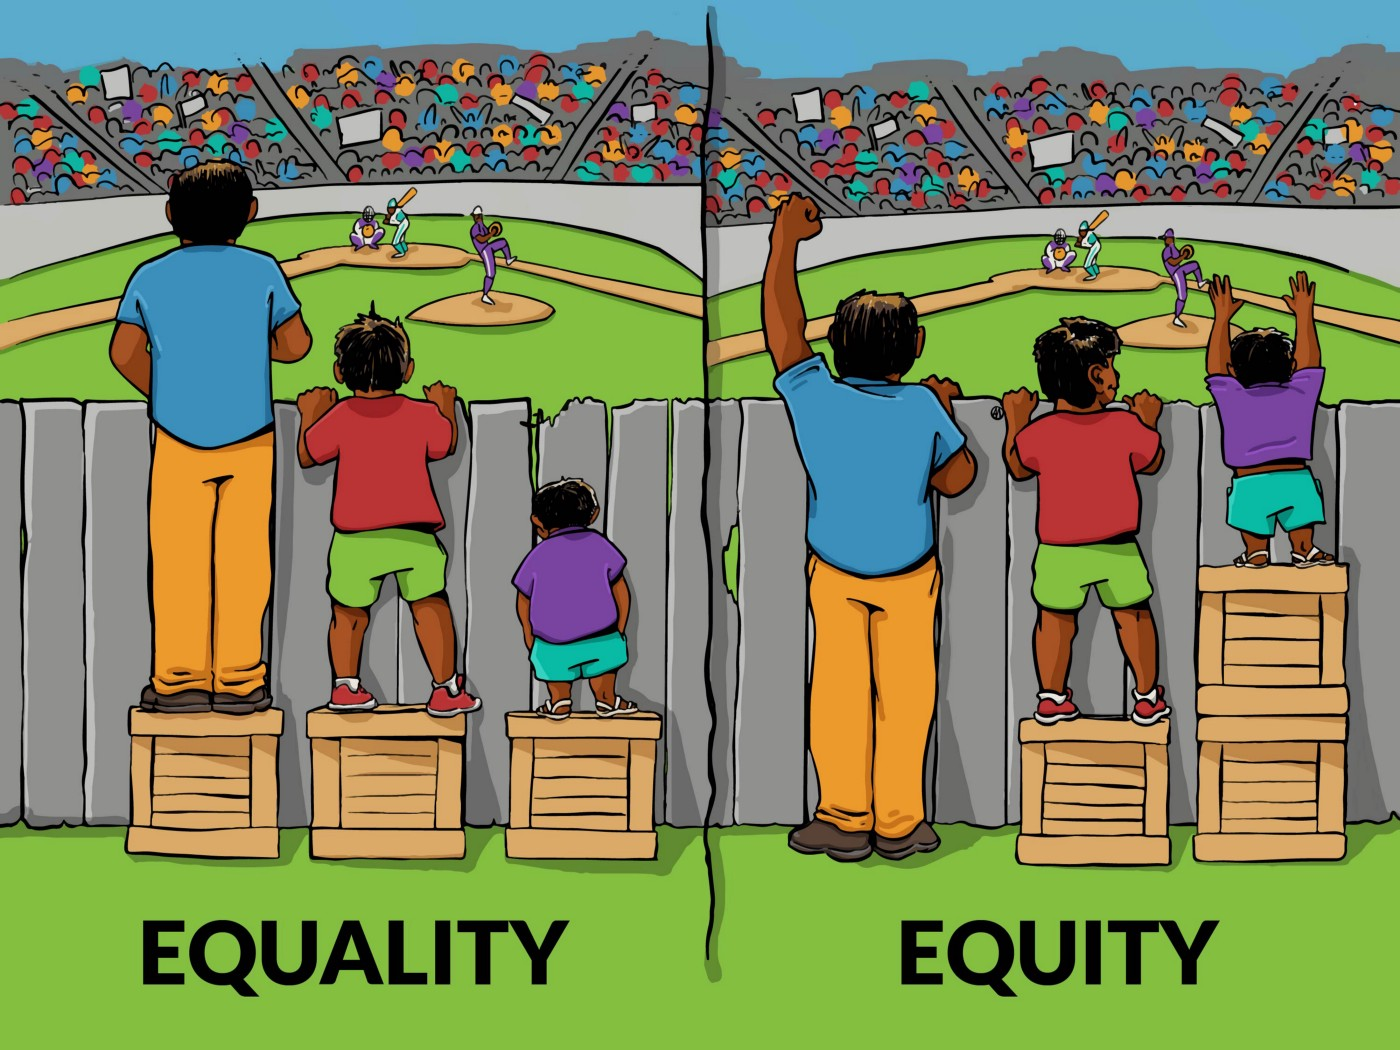 there are two images—on the left three people of different heights stand on a box of equal size so they can see over the fence to watch a baseball game, only this only makes it possible for two of the people to see over the fence. On the right, the person on the left has no box, the person in the middle stands on one box. The person on the right stands on two. Now everyone can see over the fence.